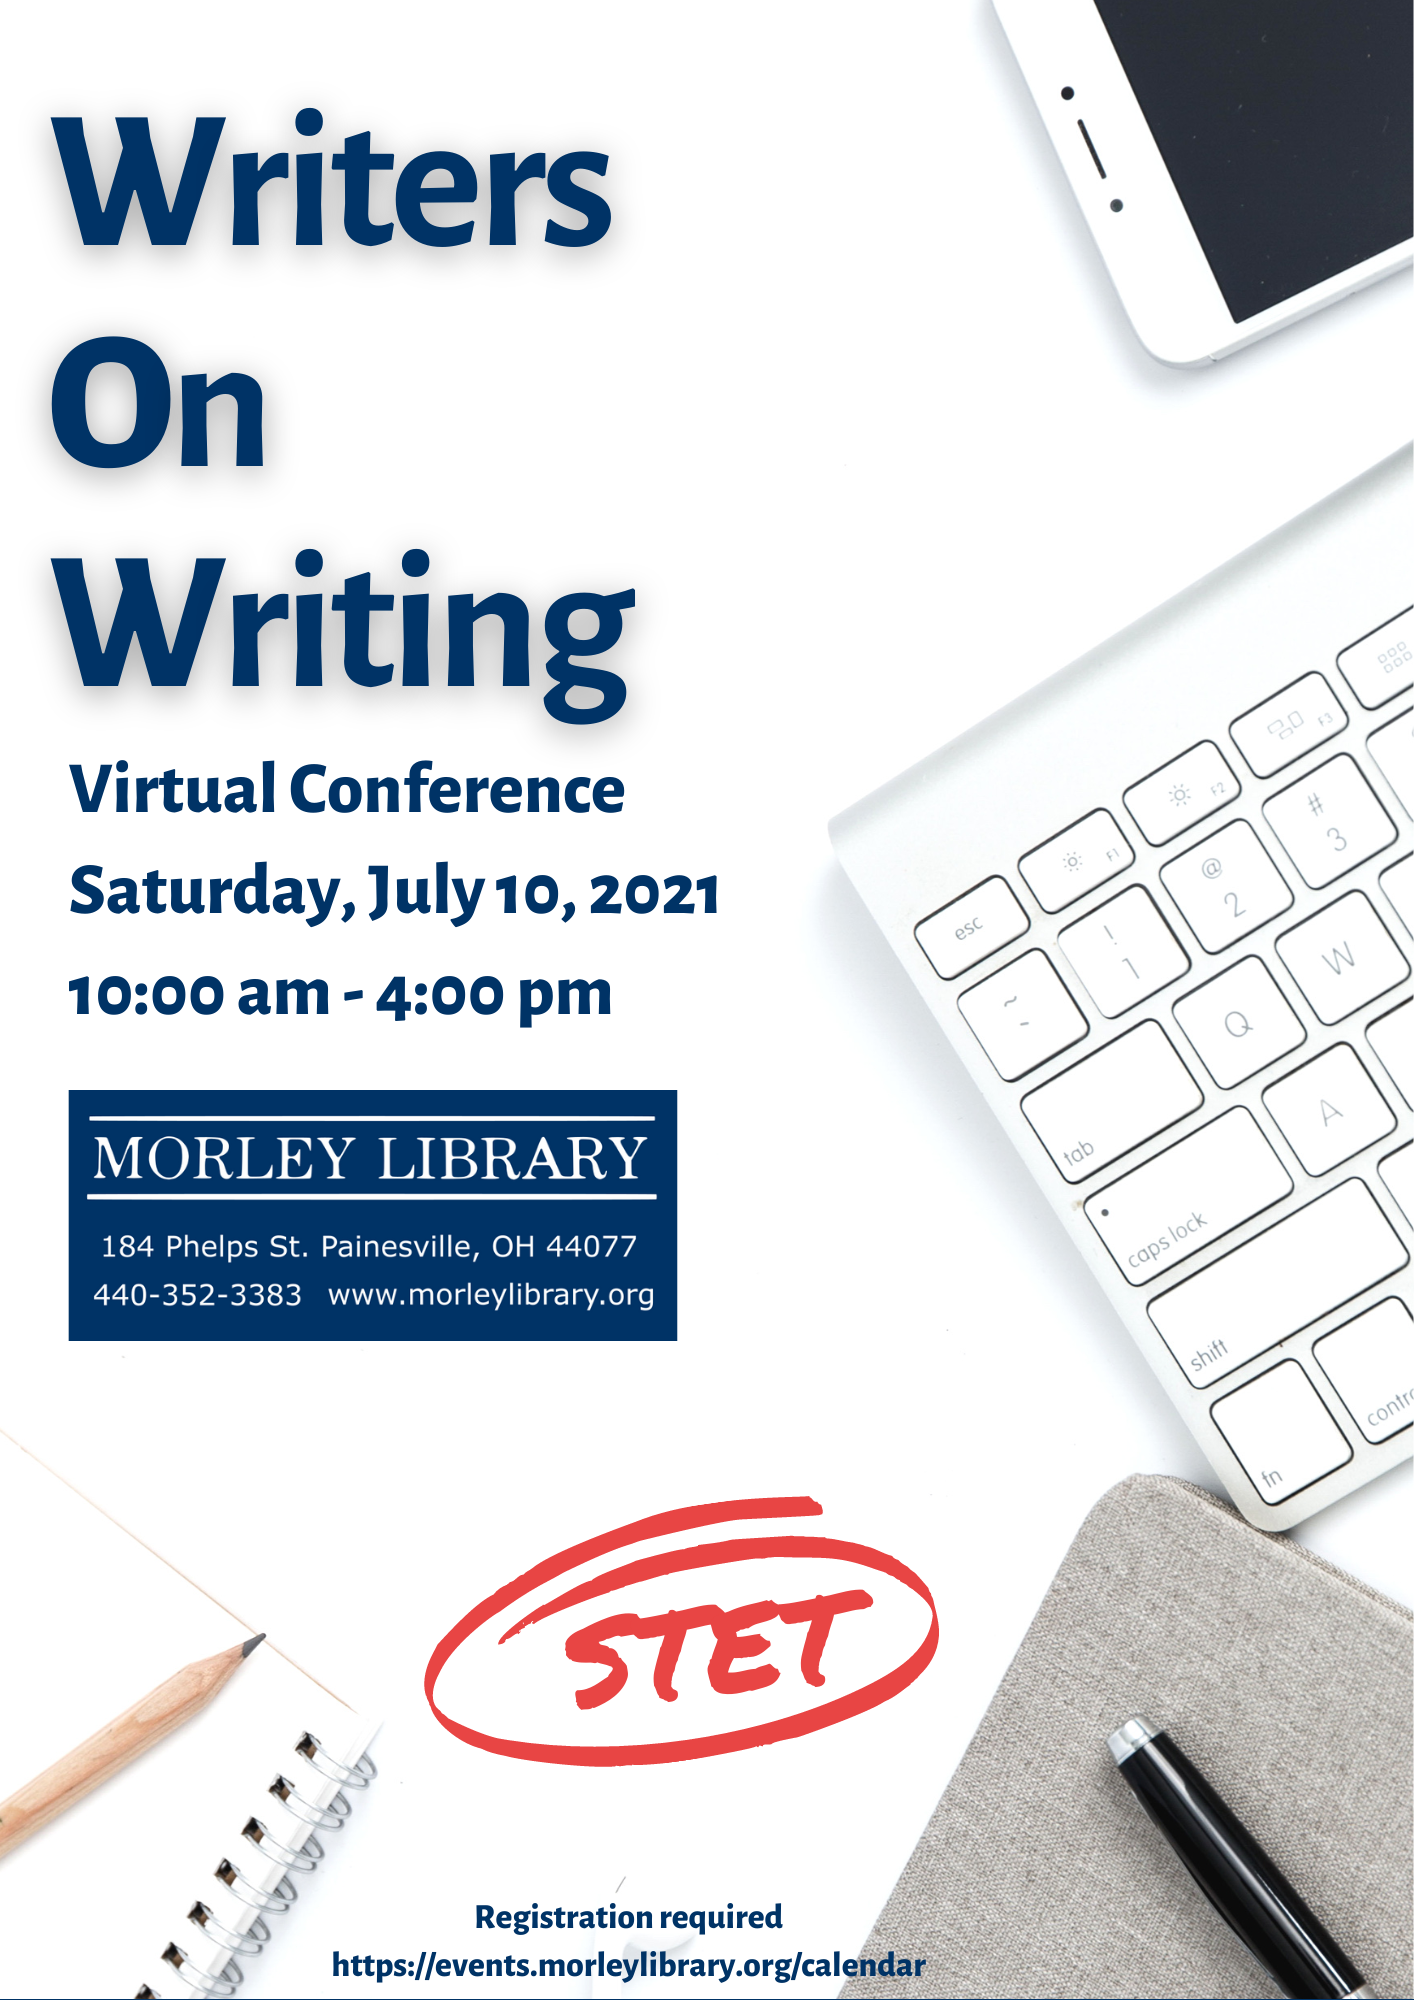 Writers on Writing (WoW) Virtual Conference